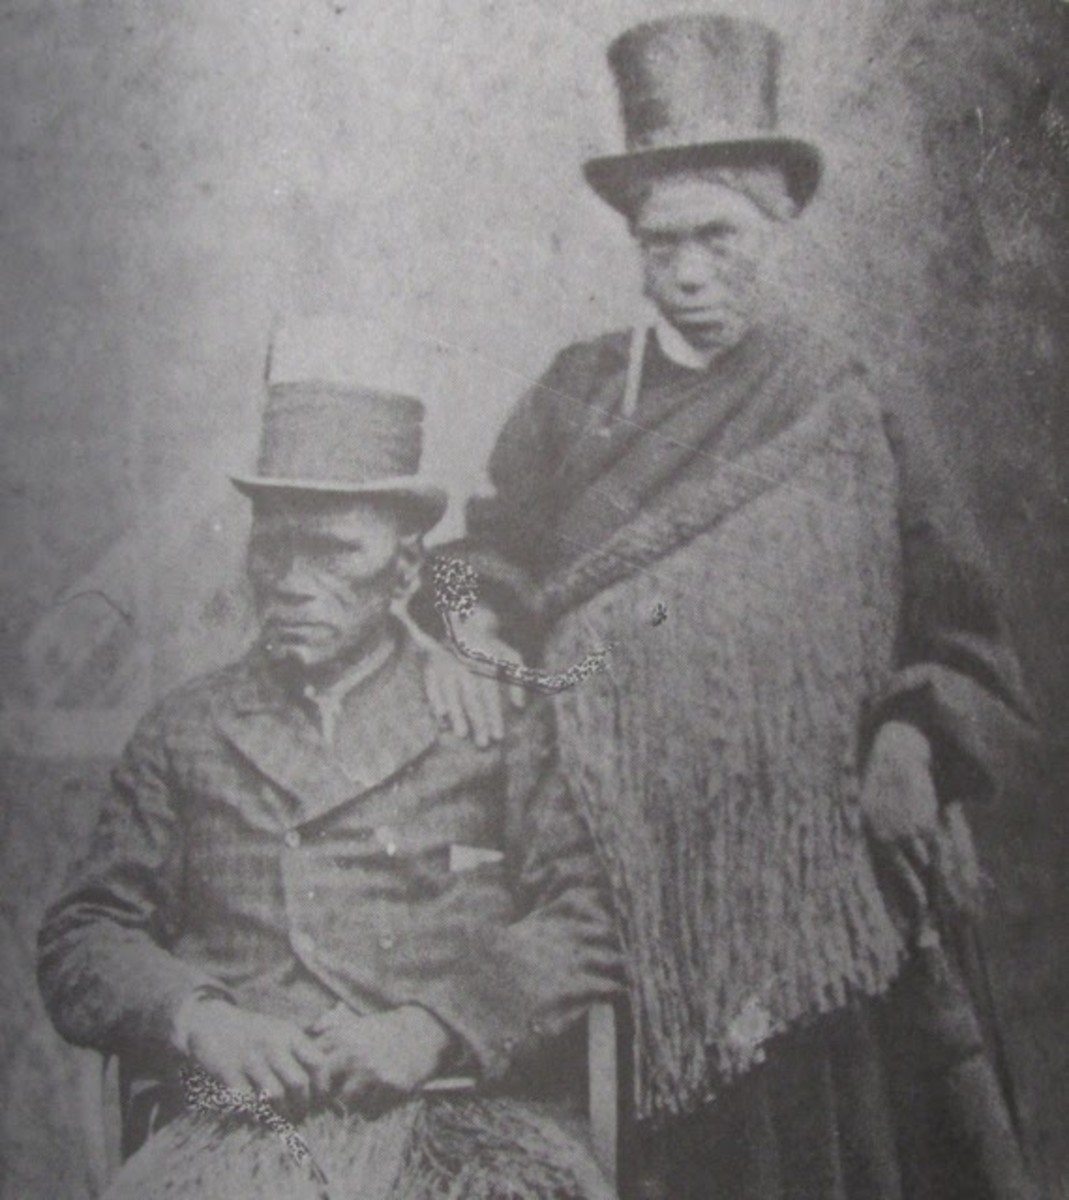 """Denial of Sovereign Rights"": The second Māori King, pictured with his wife, Hera. Source"